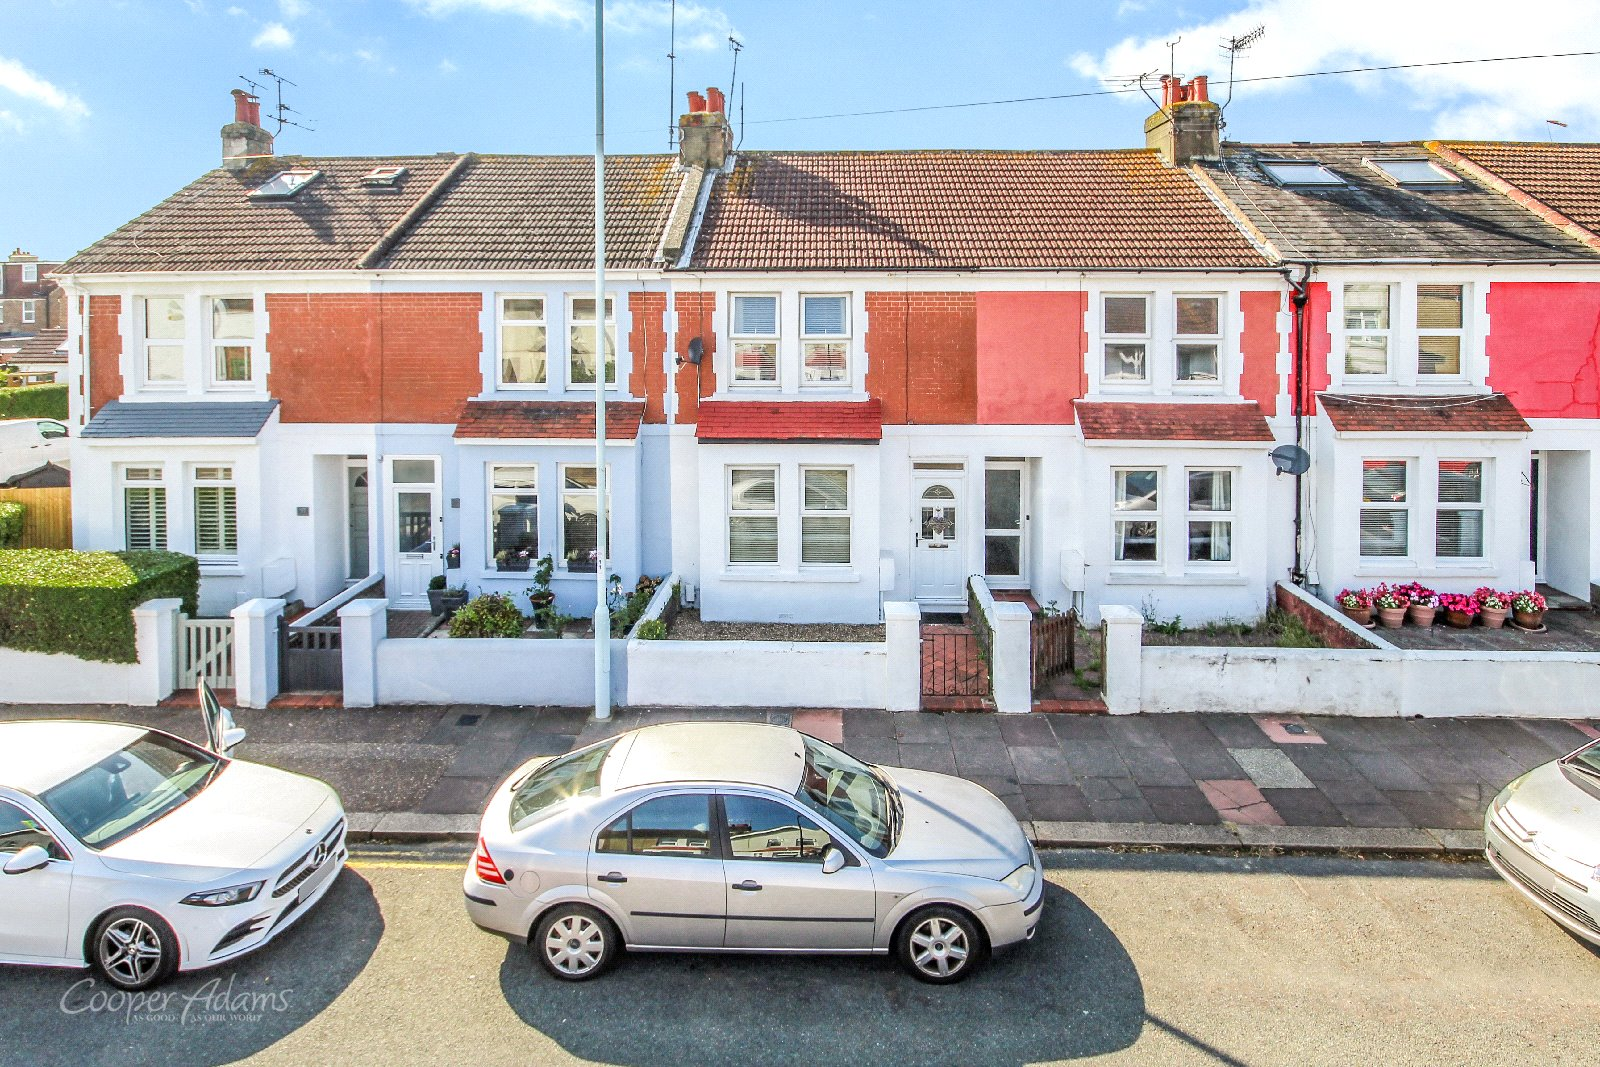 3 bed house for sale in Elm Grove, Worthing, BN11